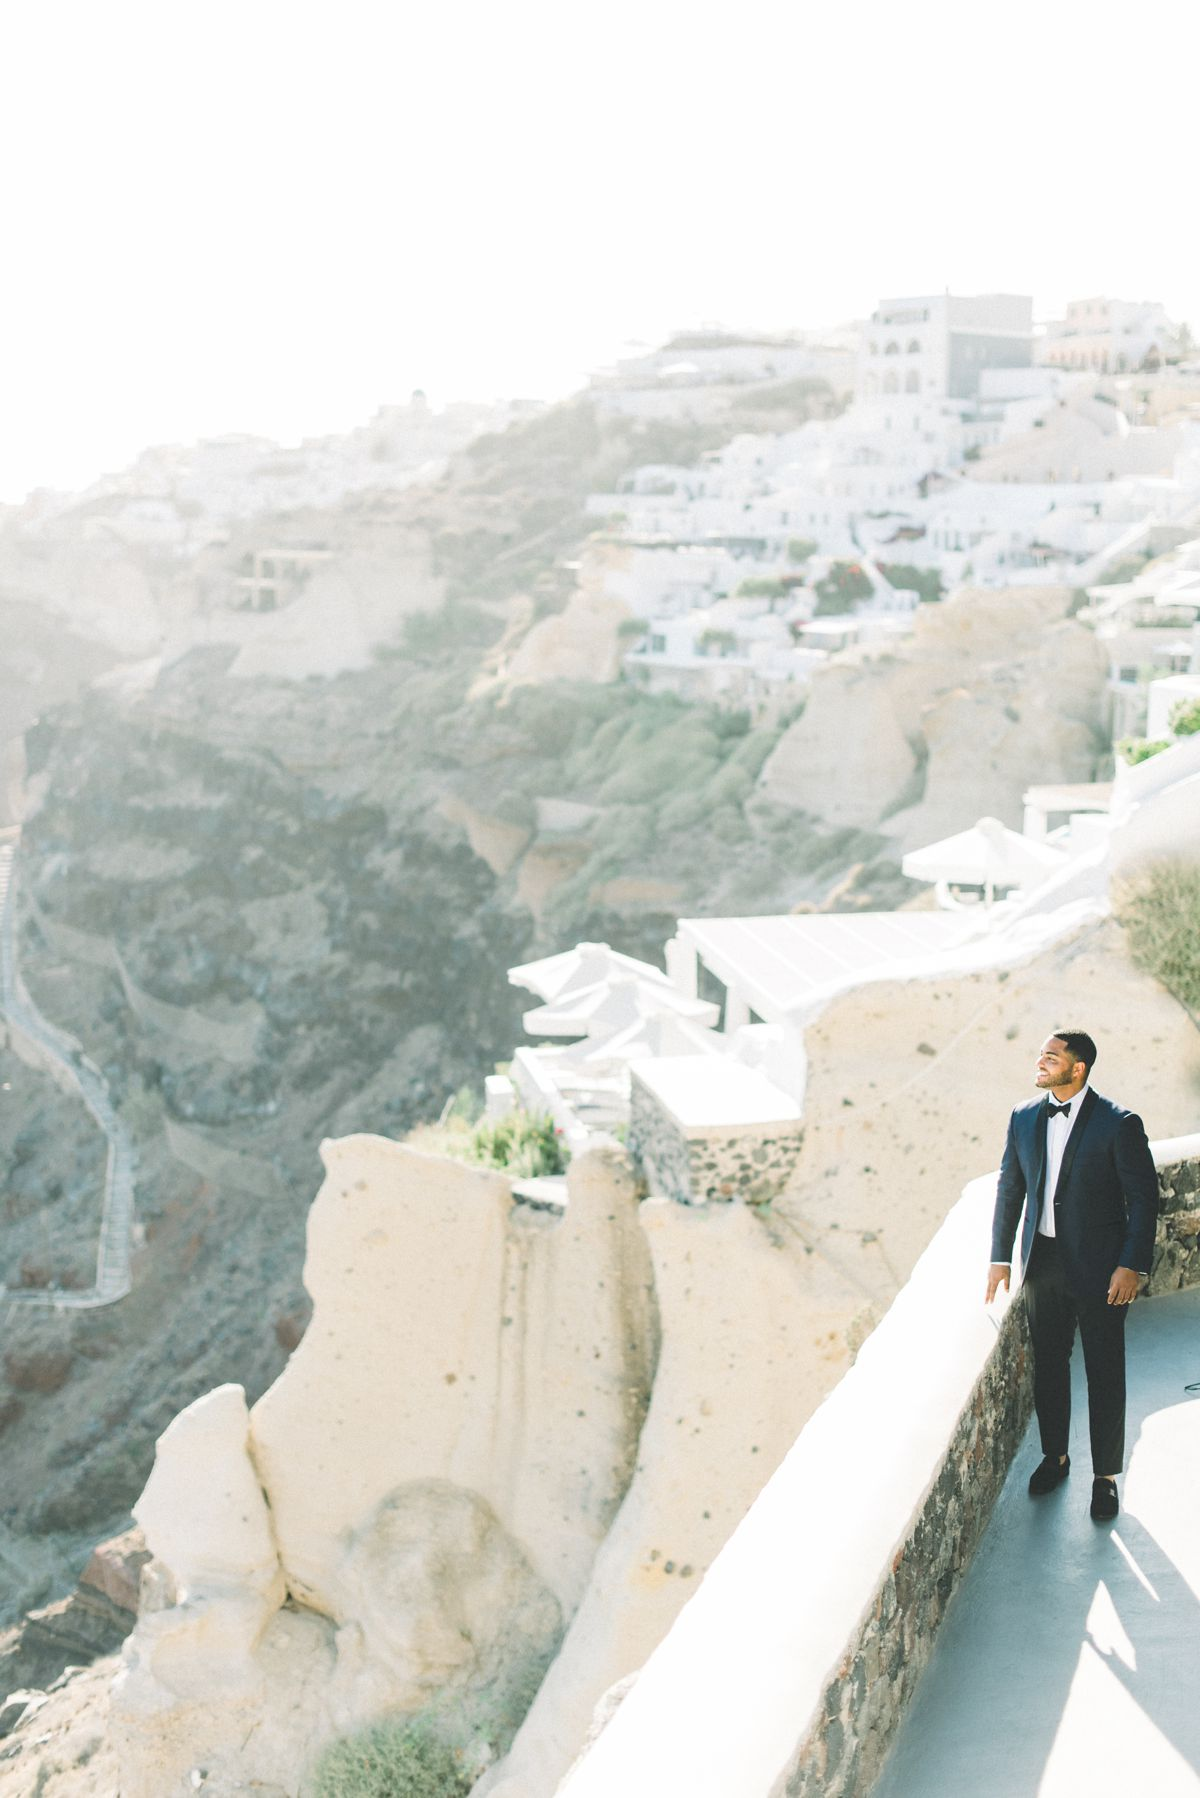 Portrait of groom at Canaves Oia, Santorini